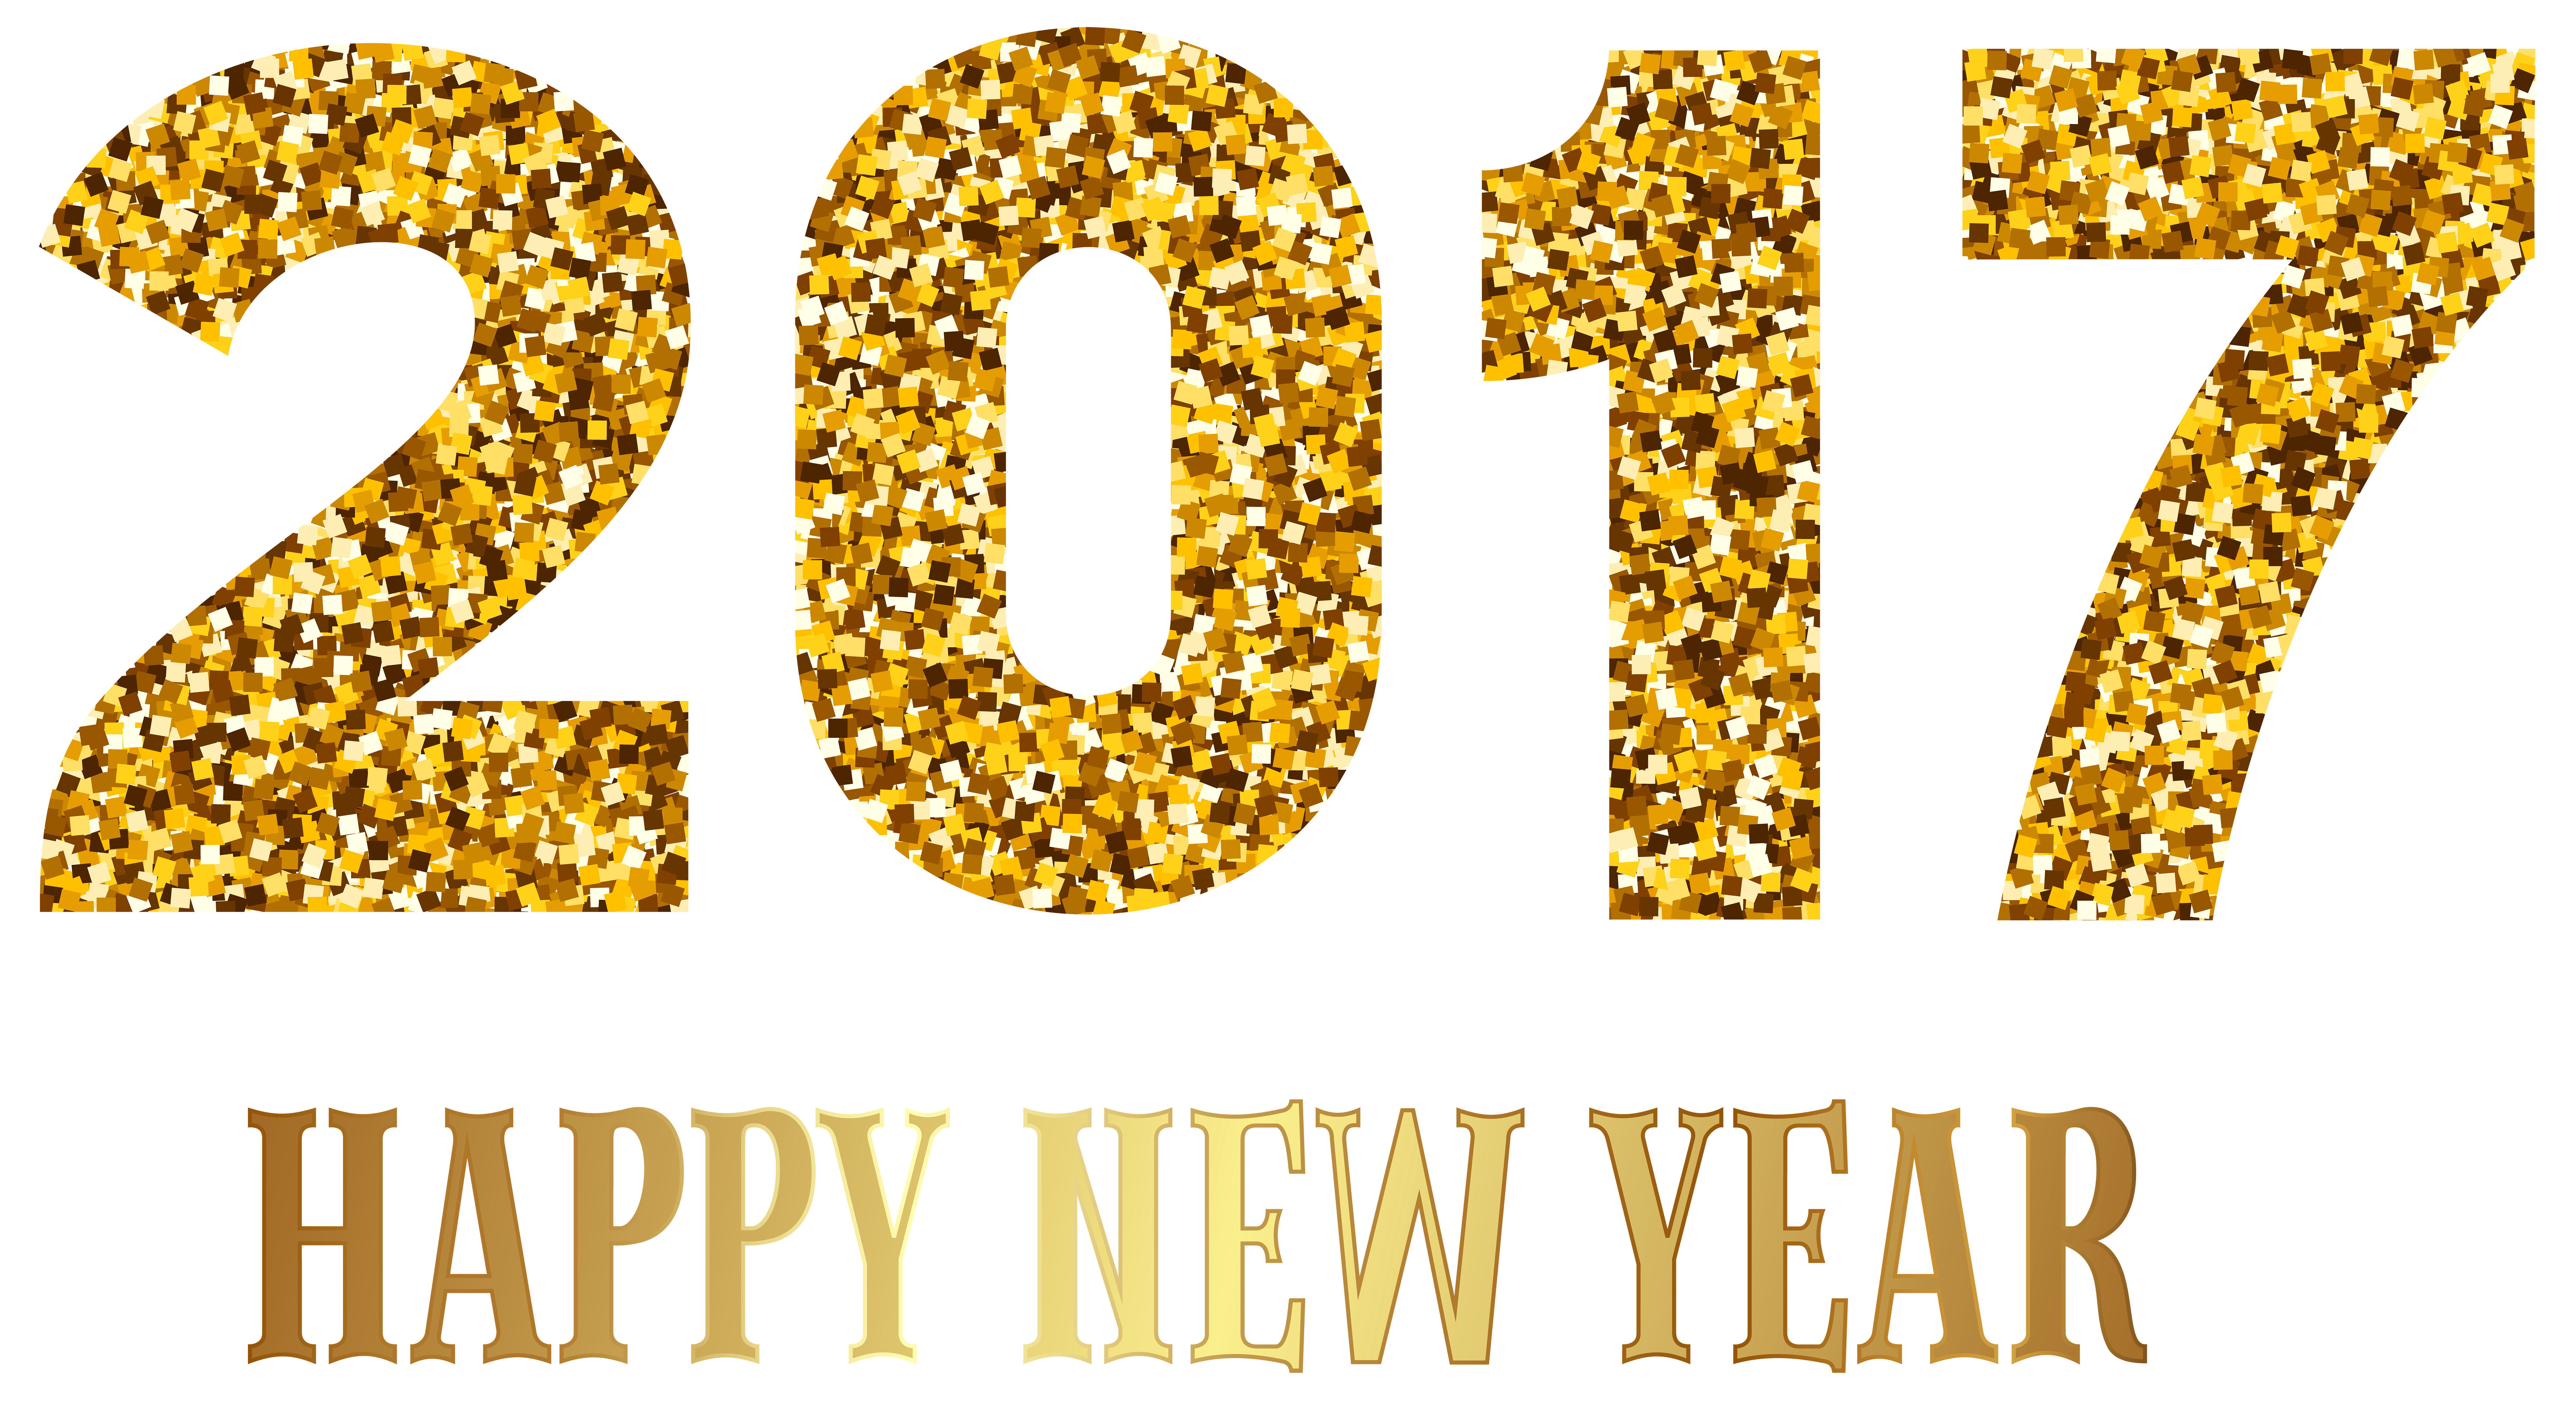 2017 New Year Png - 2017 Happy New Year Transparent PNG Image | Gallery Yopriceville ...